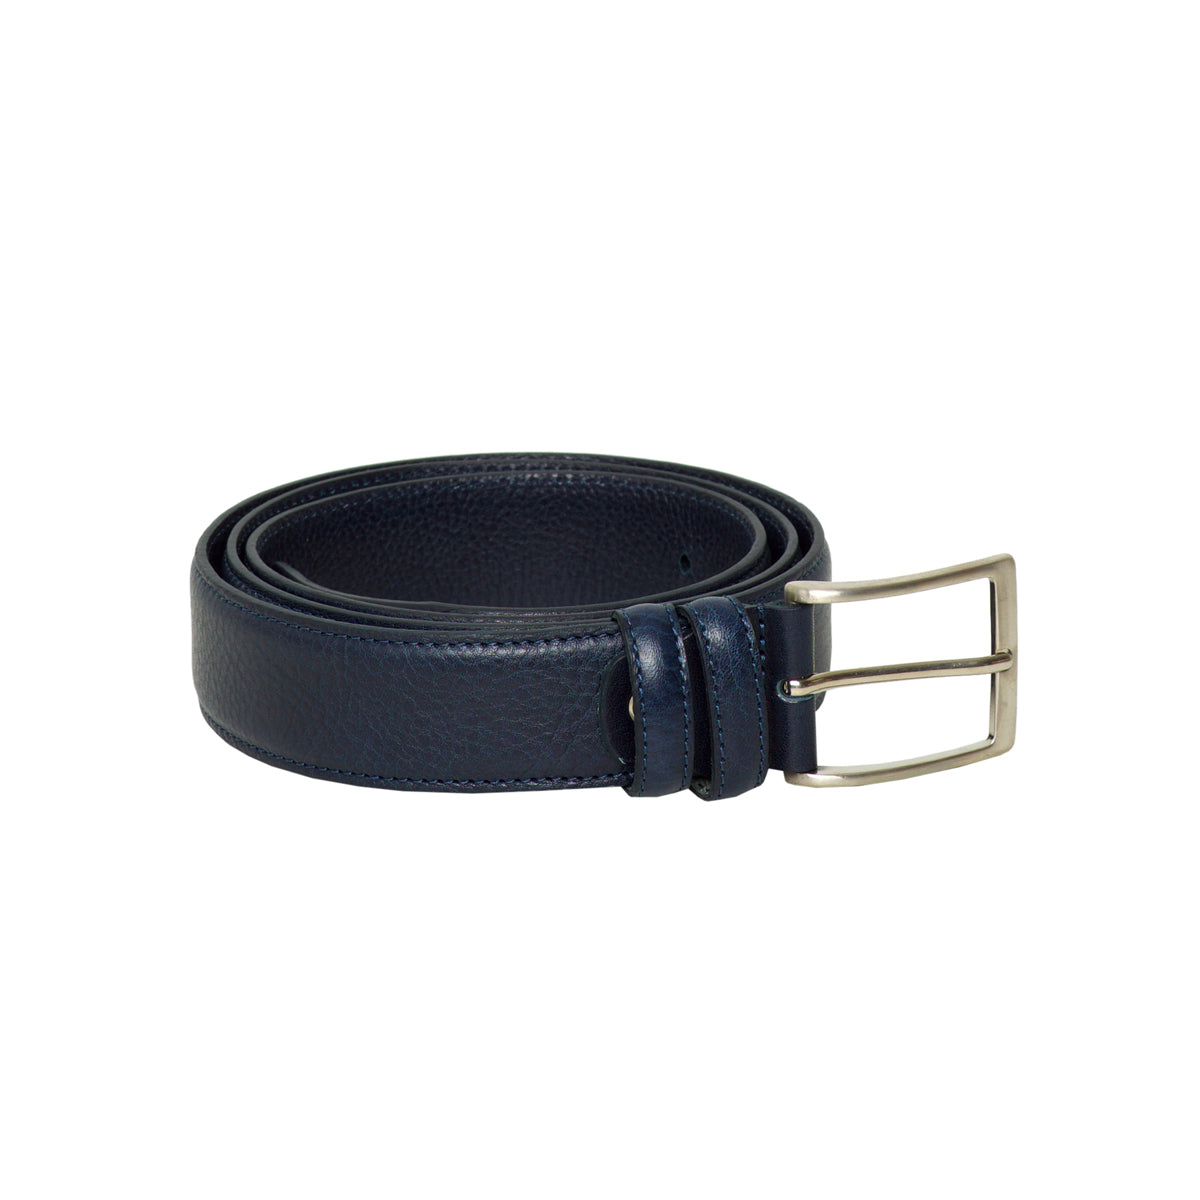 Ravenna Blue - Leather Belt